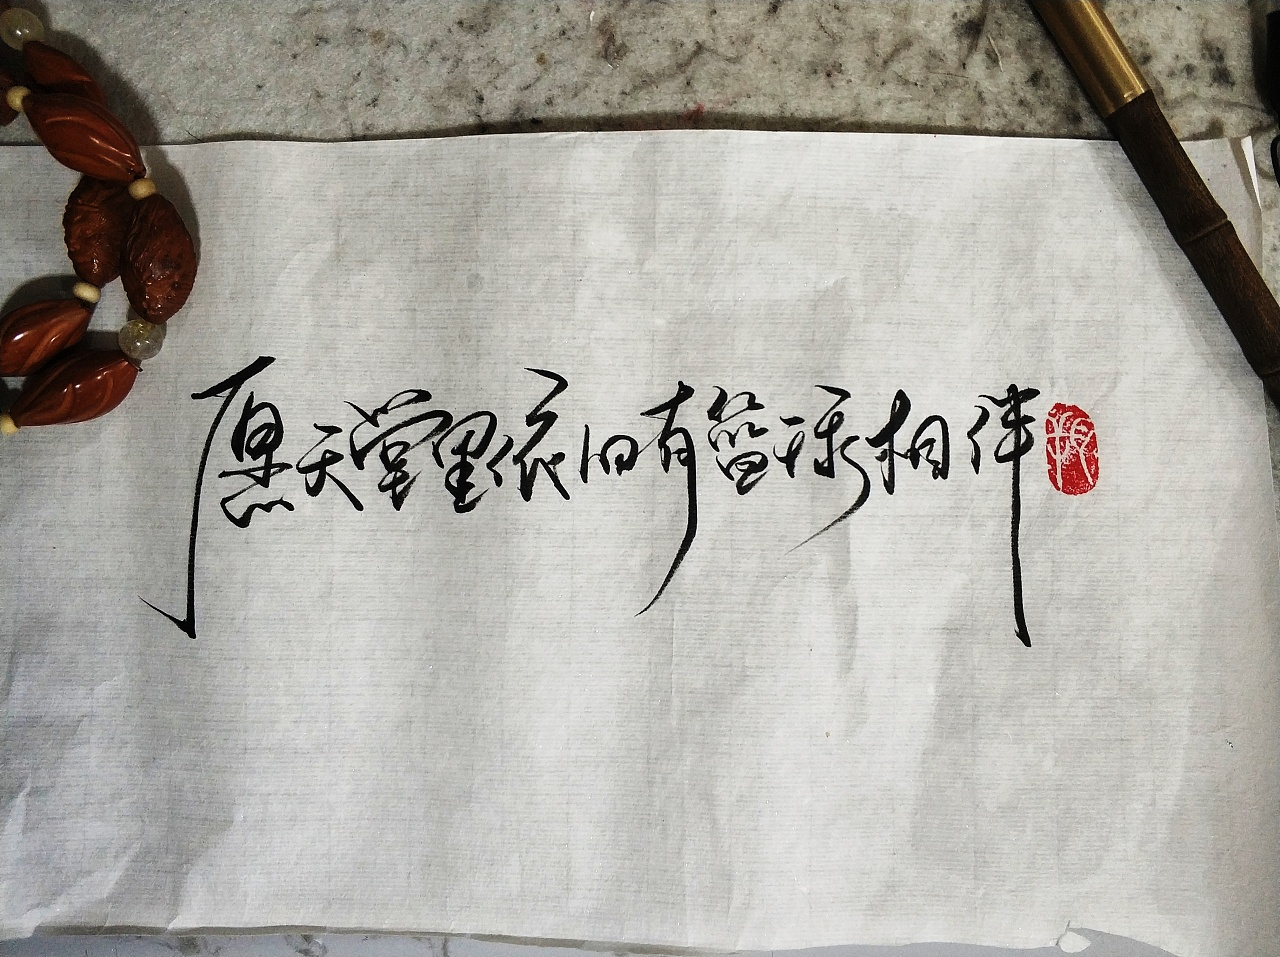 Chinese font-To kebi, the God of Basketball-Mamba Out?Absolutely not!